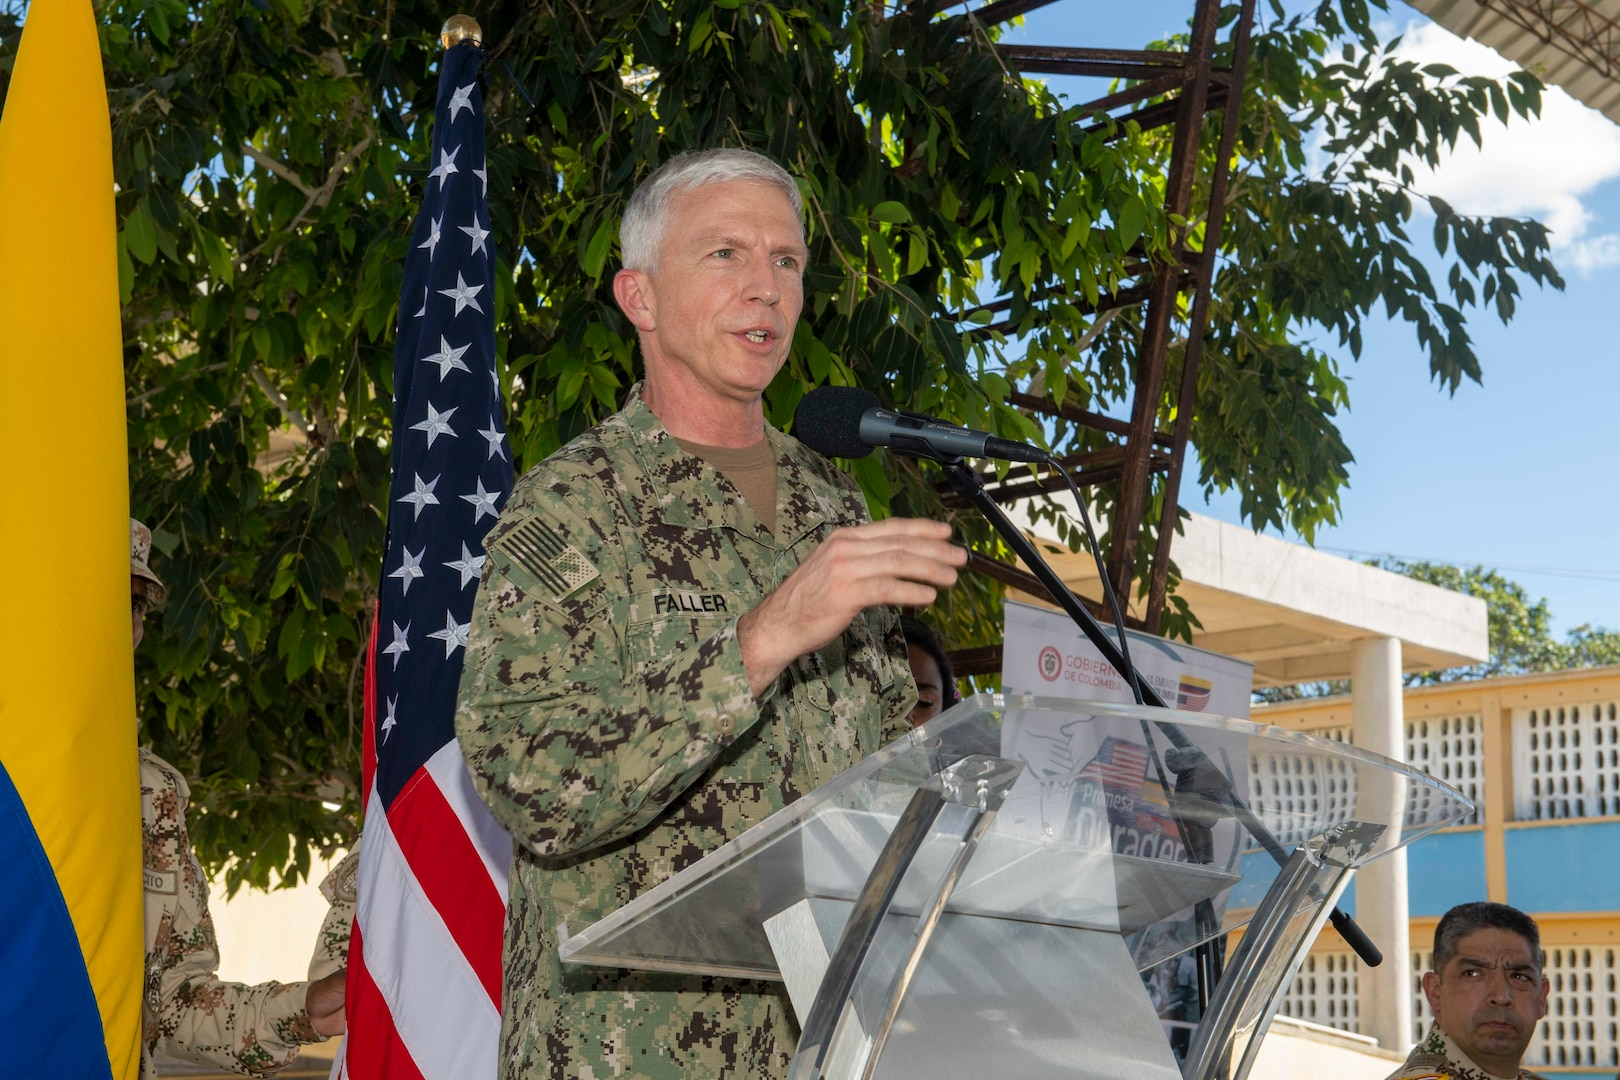 Adm. Craig Faller, commander, U.S. Southern Command, delivers remarks during the closing ceremony at a land-based medical site.